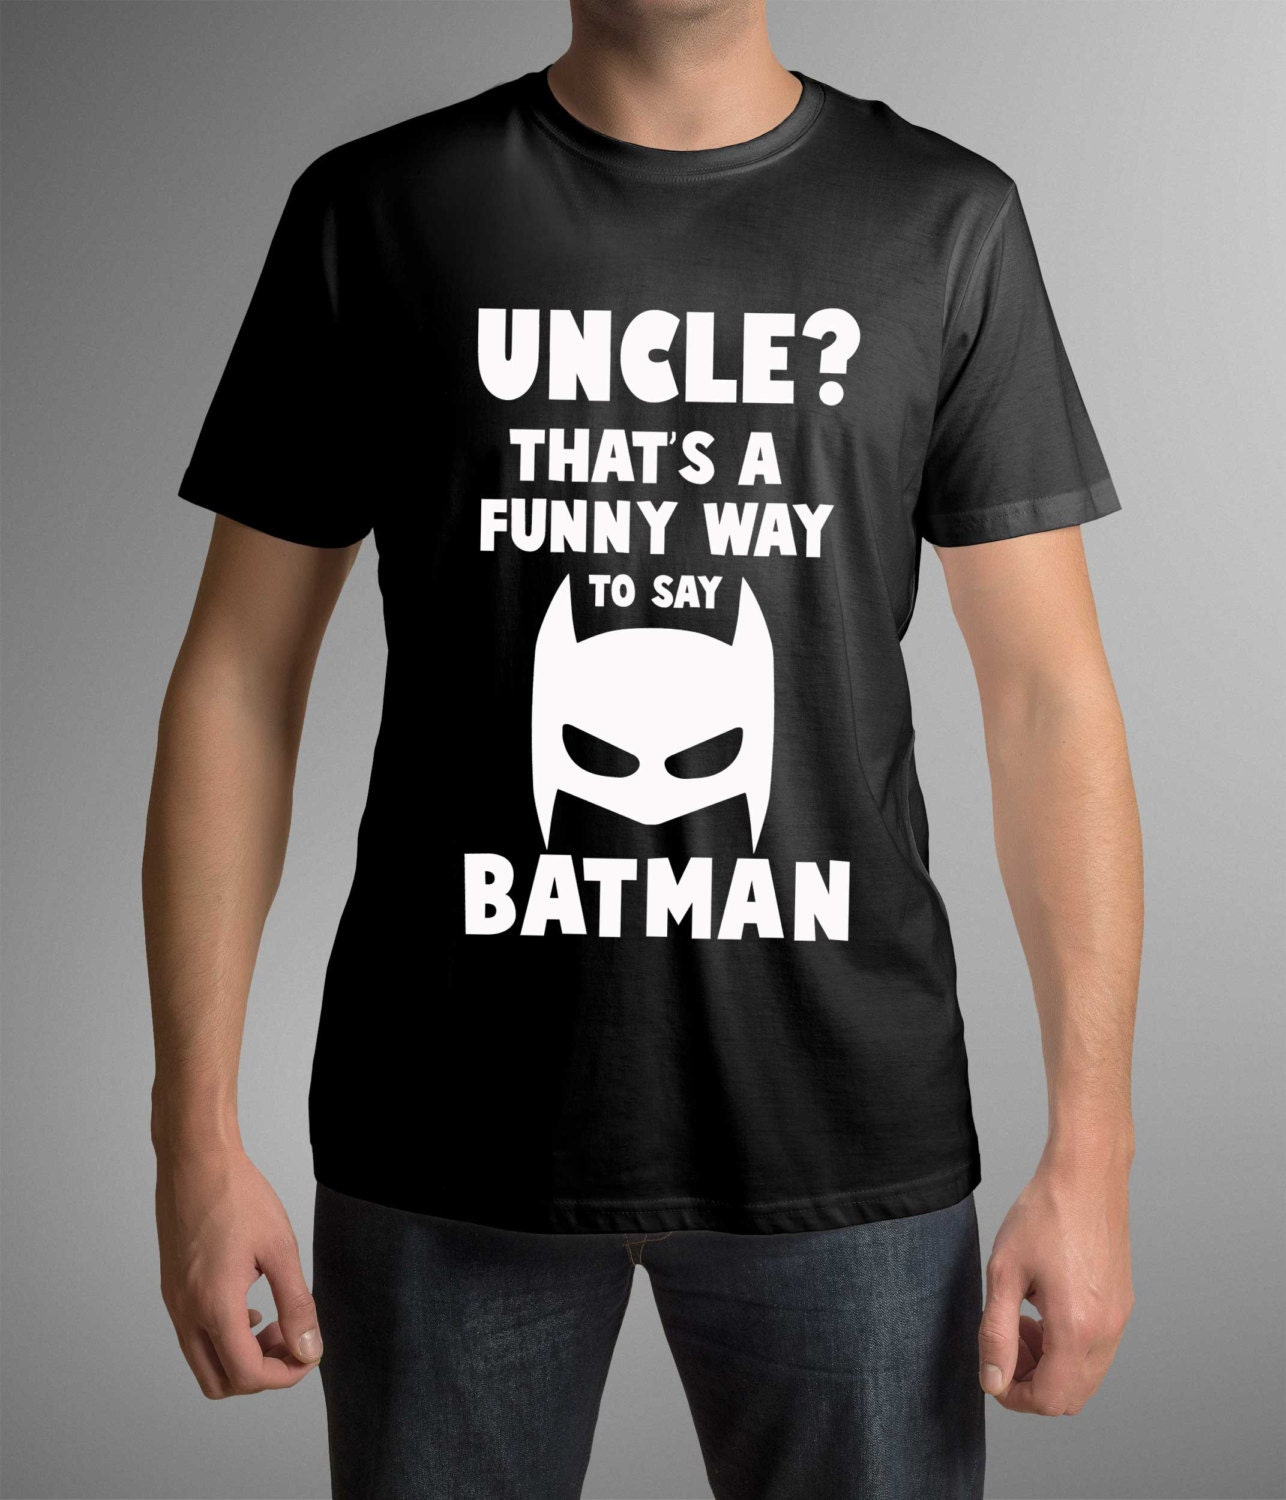 T-shirt for Uncle Gift for Uncle Batman shirt Funny print